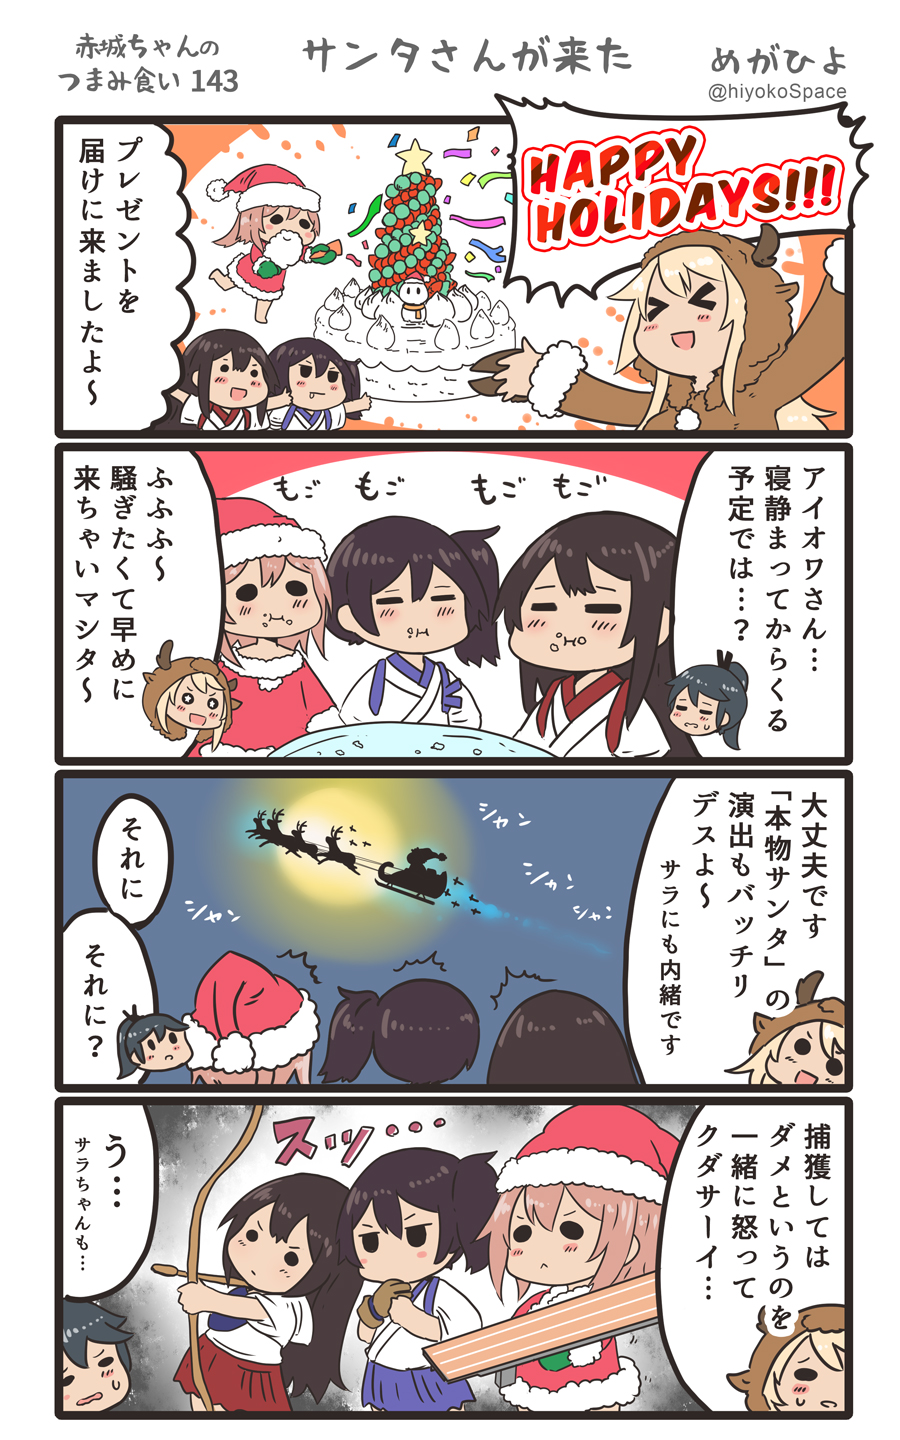 4koma akagi_(kantai_collection) alternate_costume animal_costume antlers bow_(weapon) brown_hair capelet comic gloves highres hiyoko_(nikuyakidaijinn) holding holding_bow_(weapon) holding_weapon houshou_(kantai_collection) iowa_(kantai_collection) japanese_clothes kaga_(kantai_collection) kantai_collection long_hair multiple_girls ponytail red_nose reindeer_antlers reindeer_costume santa_costume saratoga_(kantai_collection) side_ponytail speech_bubble sweatdrop translation_request twitter_username weapon younger